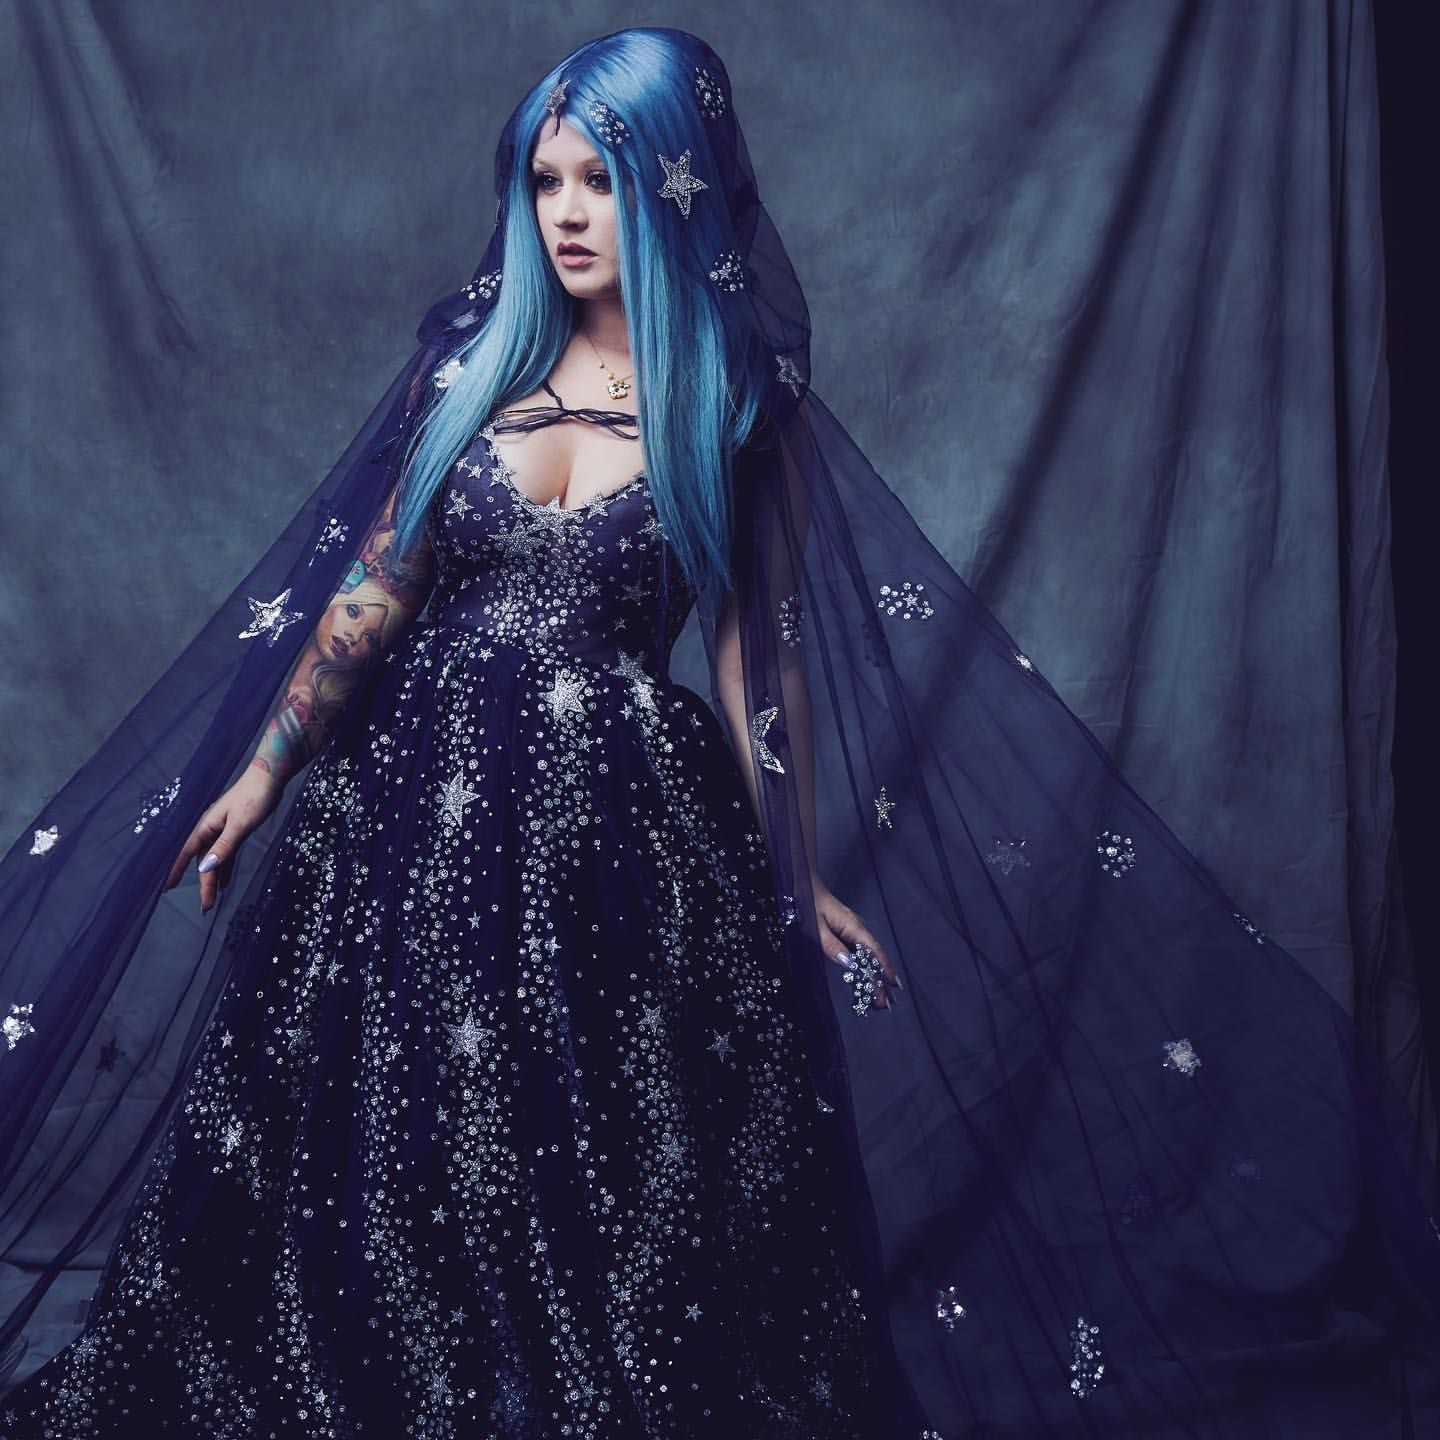 Indulge Yourself With This Dessert Made Out Of Night Skies And Dreams Sprinkle Sugar Galaxies And Serve Wi Chotronette Dresses Star Prom Dress Beautiful Gowns [ 1440 x 1440 Pixel ]